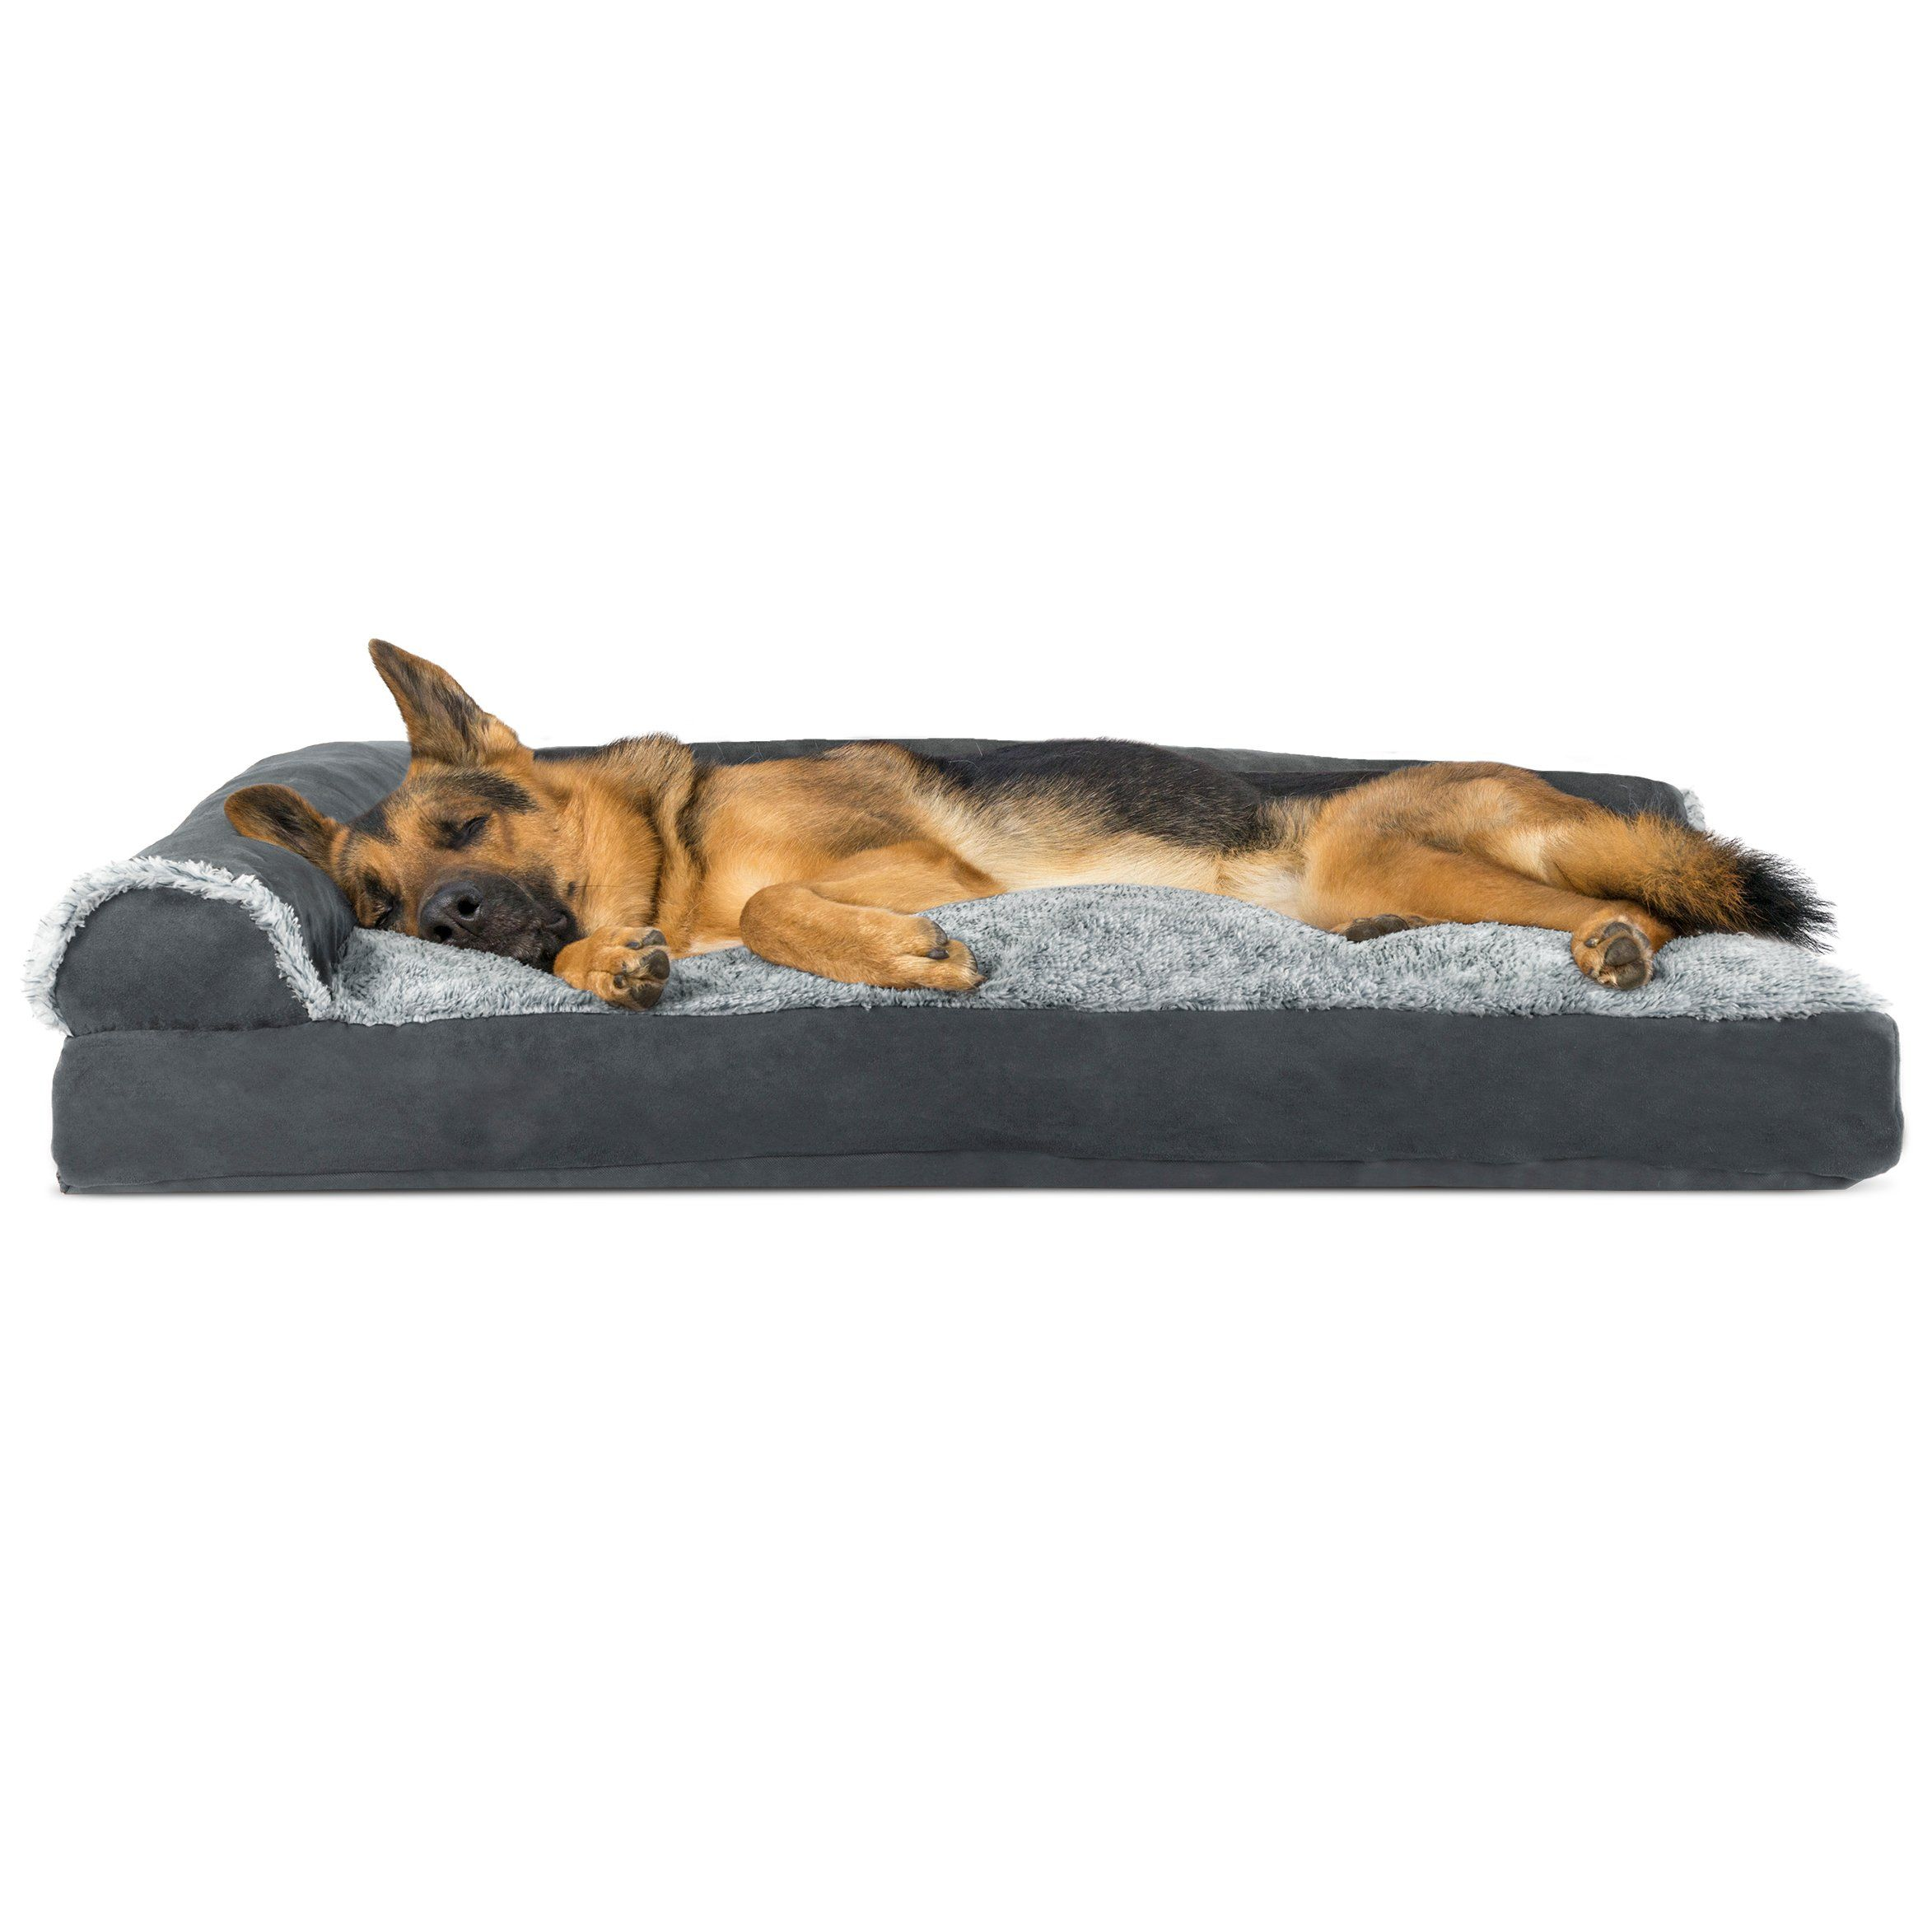 Furhaven Pet Dog Bed Faux Fur And Suede Lshaped Chaise Lounge Pillow Sofastyle Pet Bed For Dogs And Cats Stone Gray Jumbo Dog Pet Beds Lounge Pillow Pet Bed